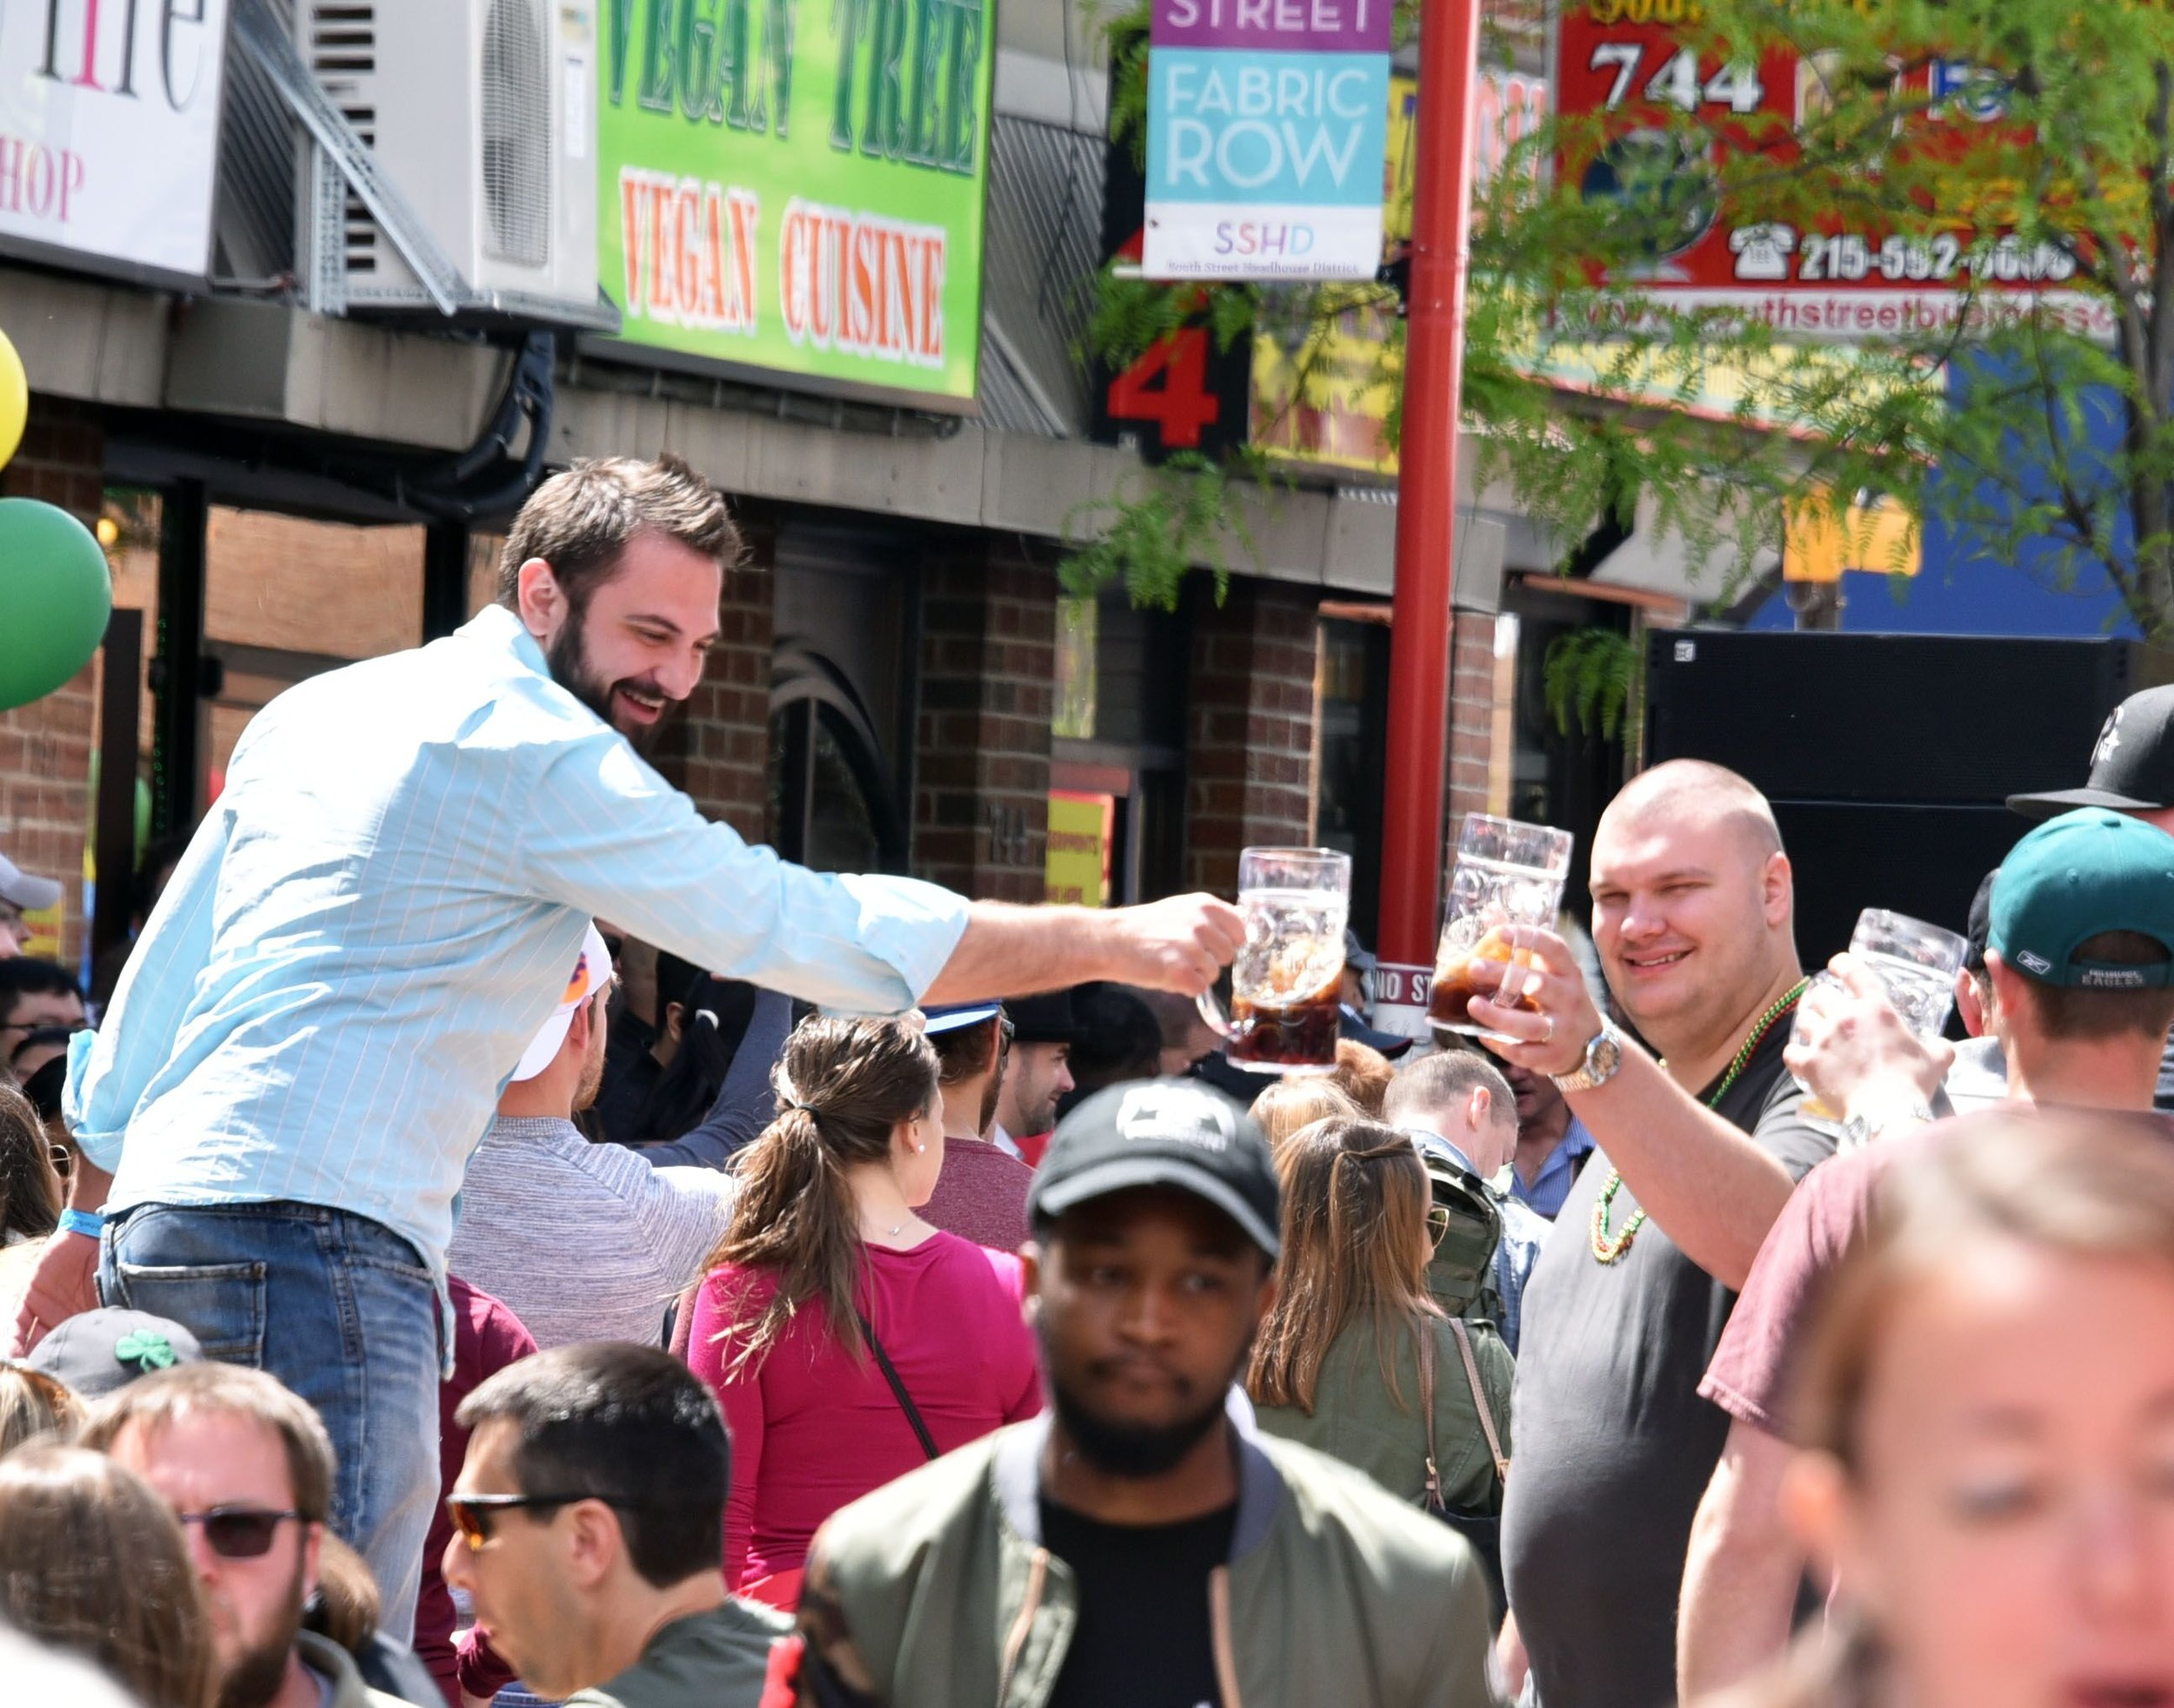 Festival Patrons Clinking Beer Steins at Maifest 2018